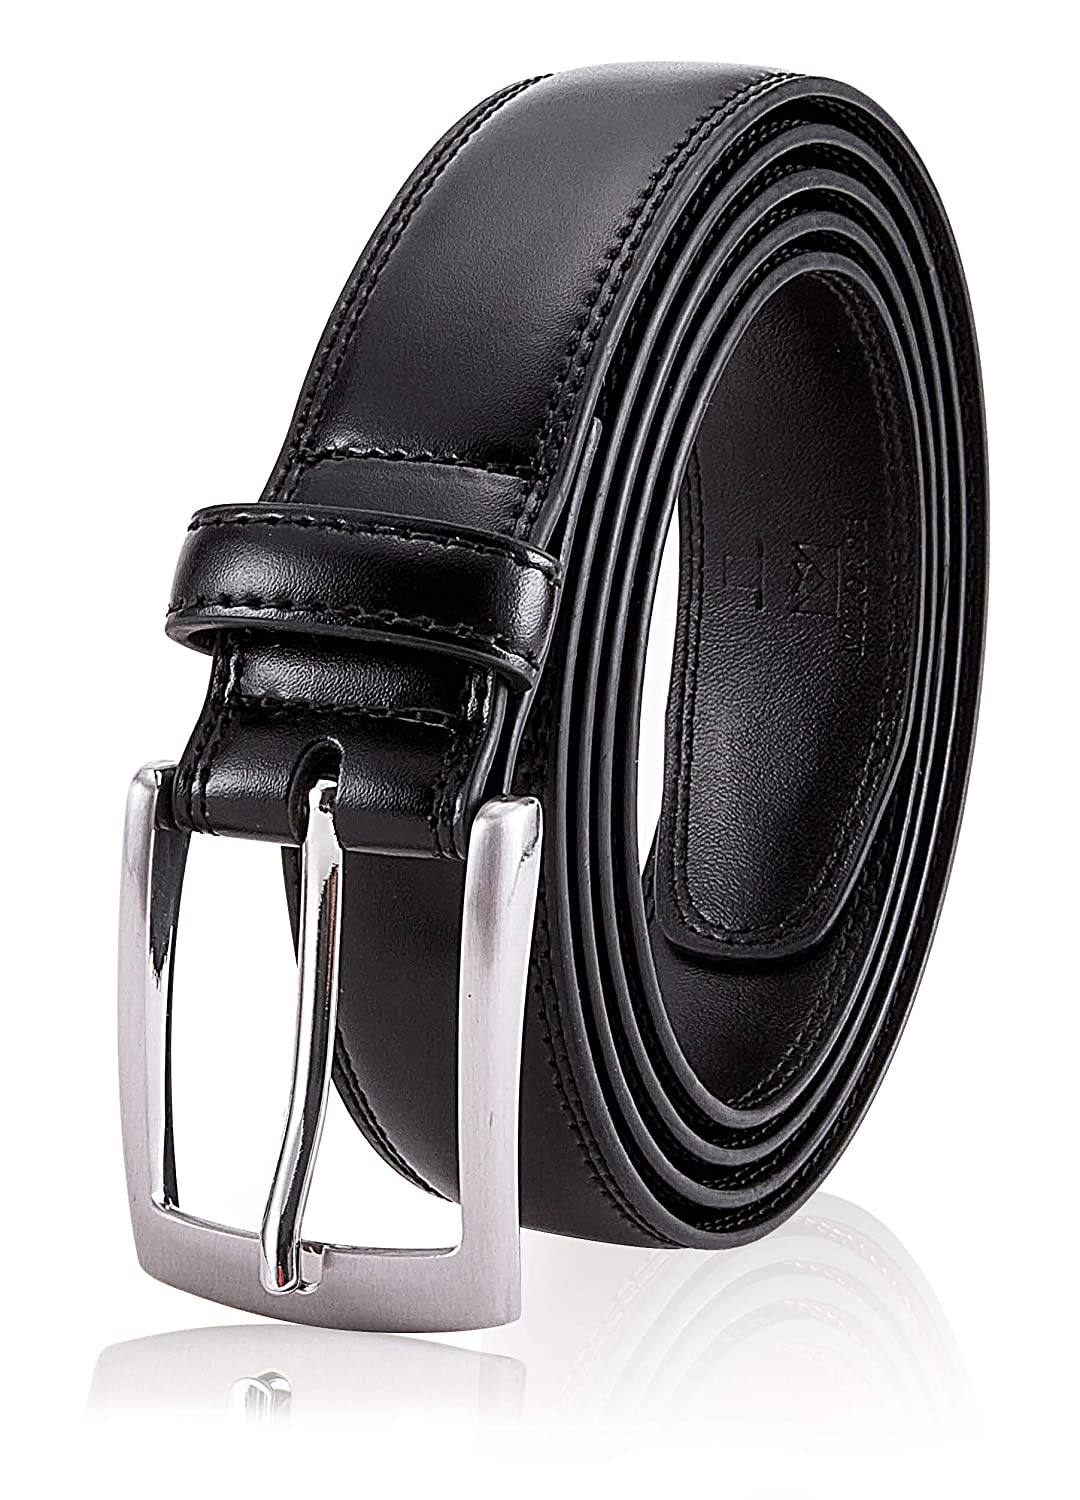 Milorde's Men Genuine Leather Belt with Single Prong Buckle, Fashion & Classic Design for Dress and Causal